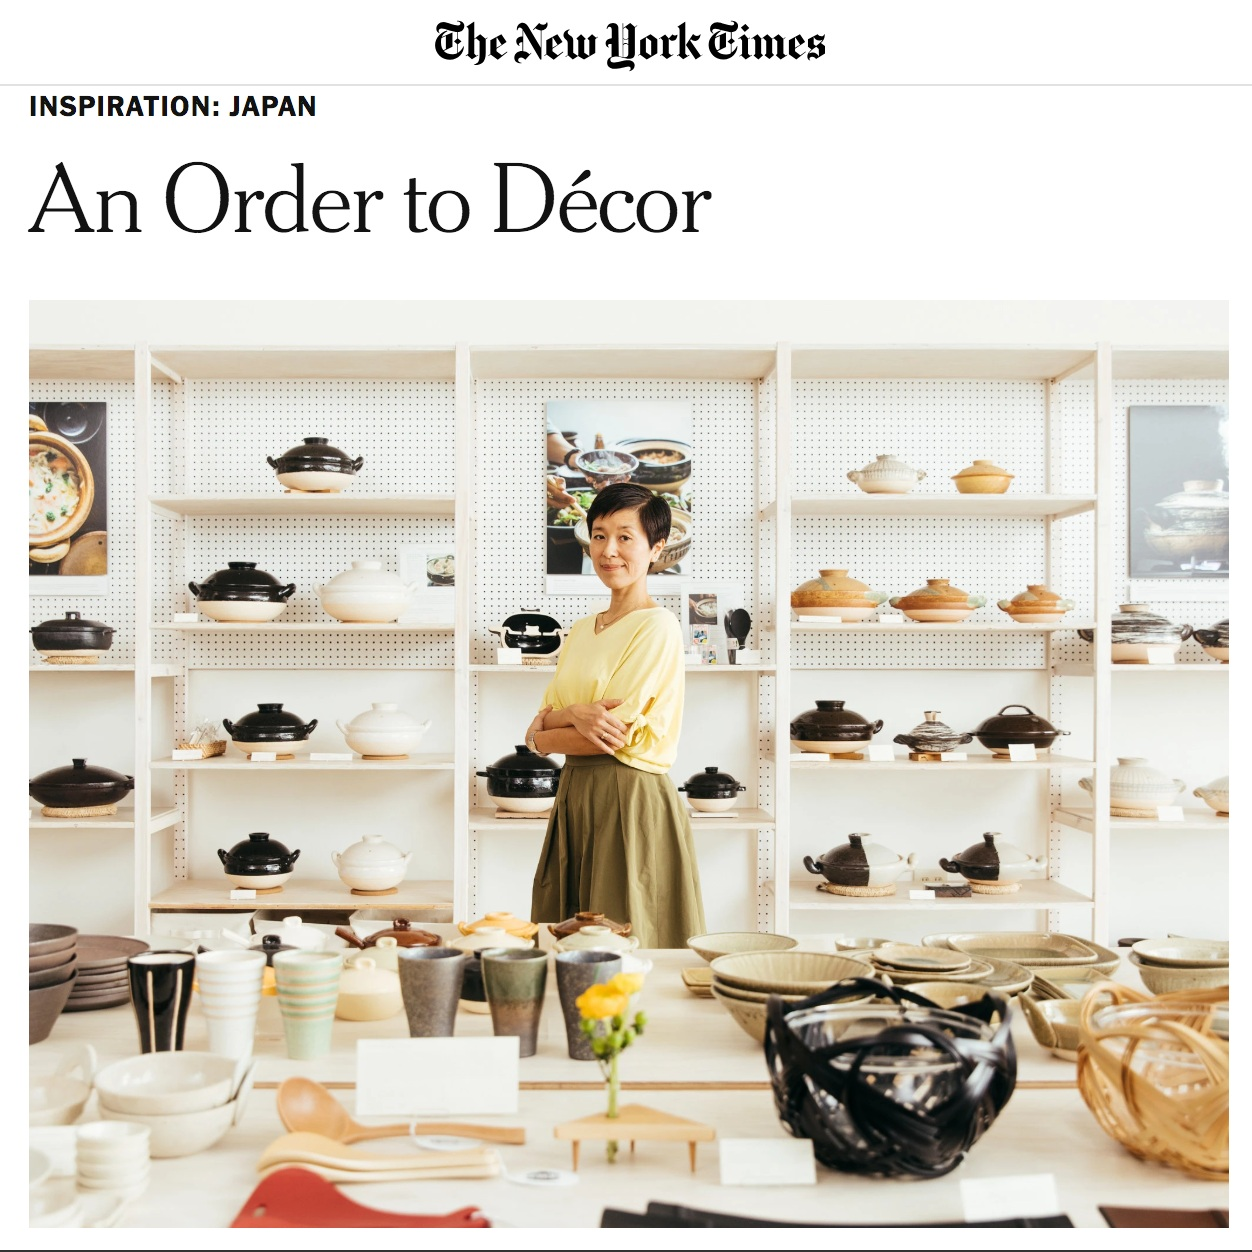 SALT + BONES featured in   The New York Times  .